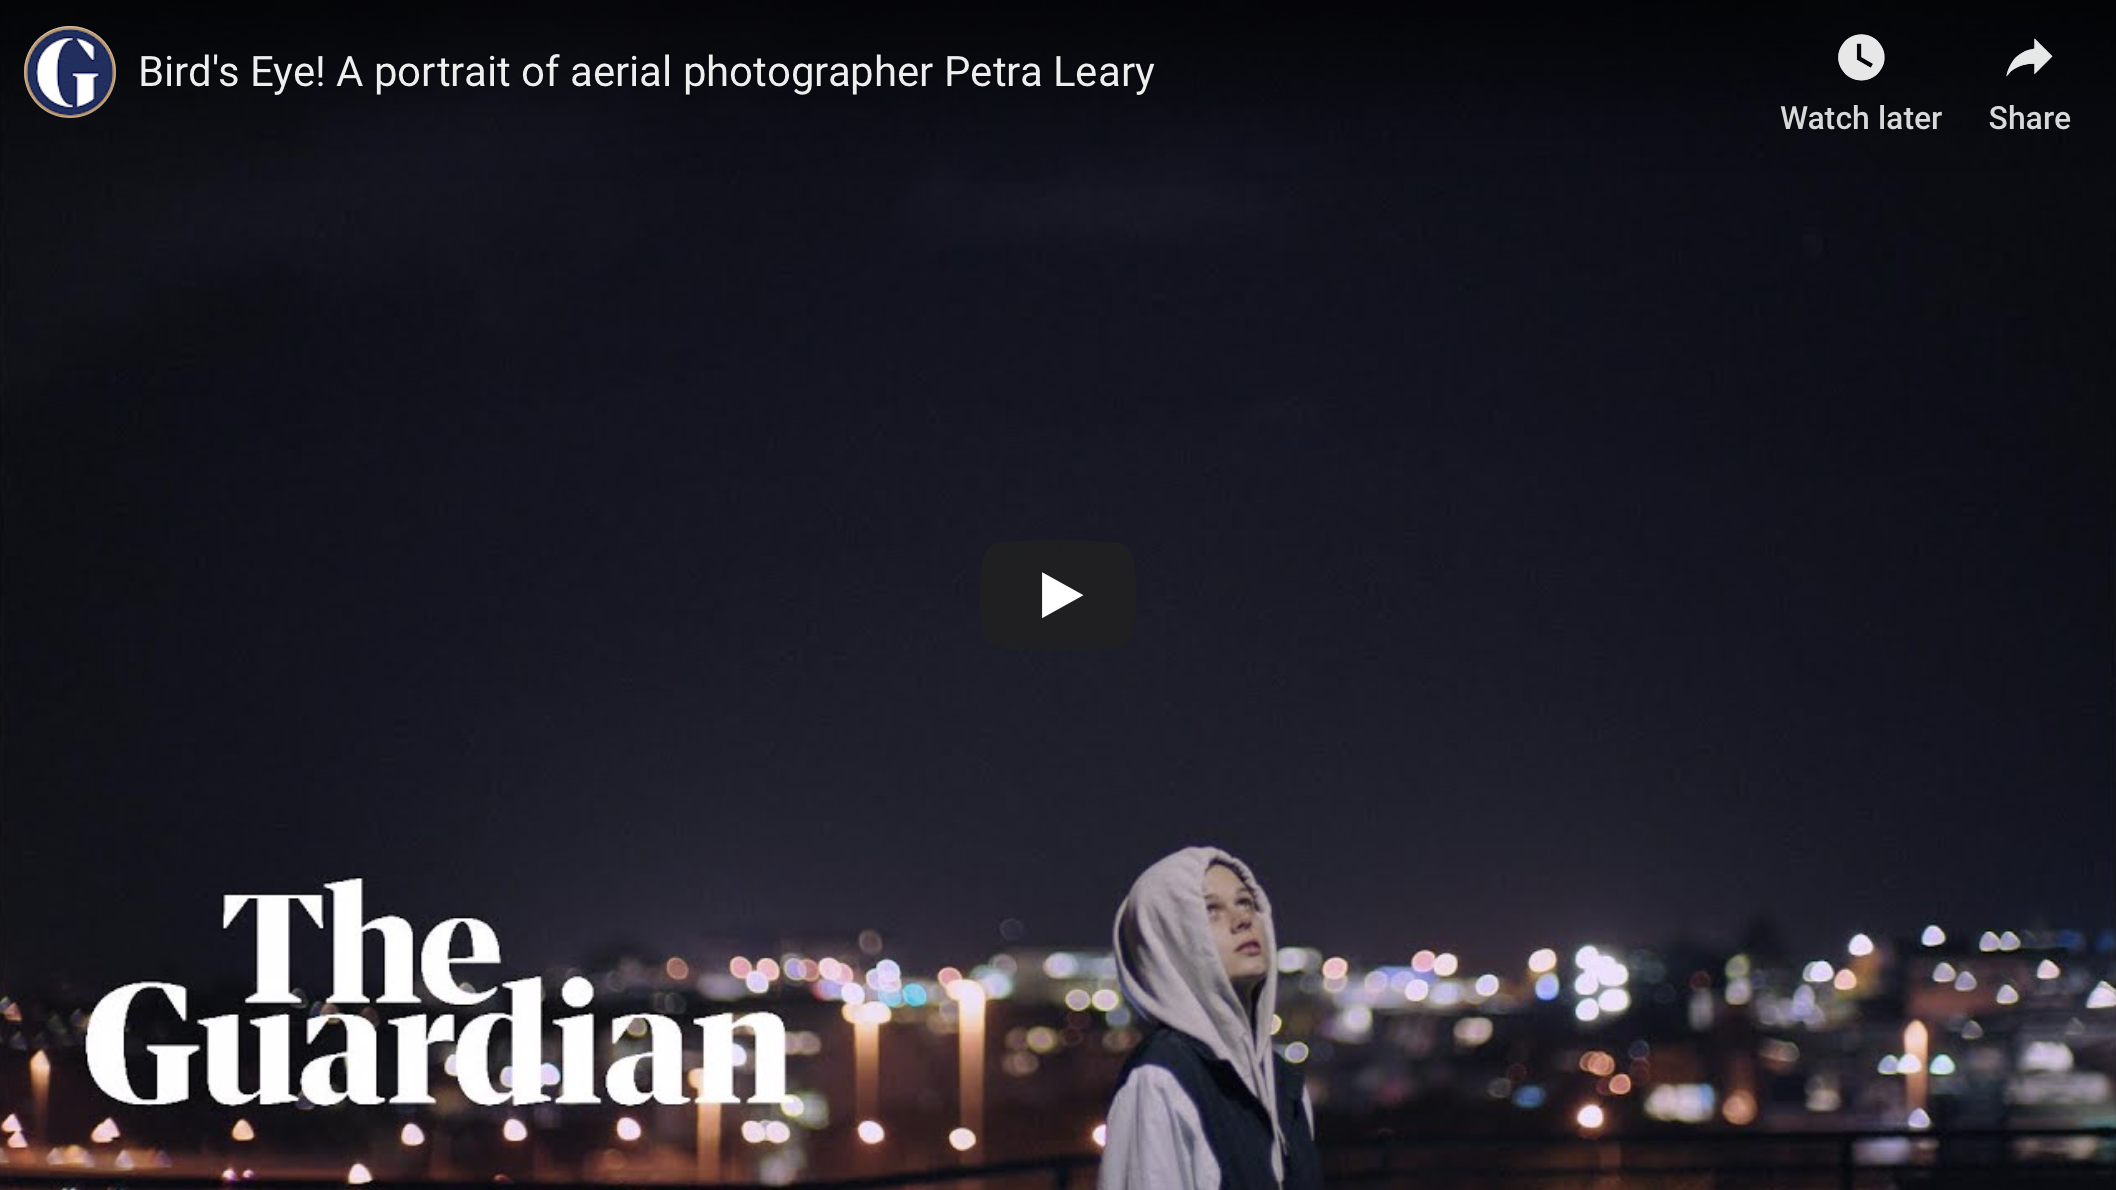 The Guardian  Bird's Eye! A portrait of aerial photographer Petra Leary